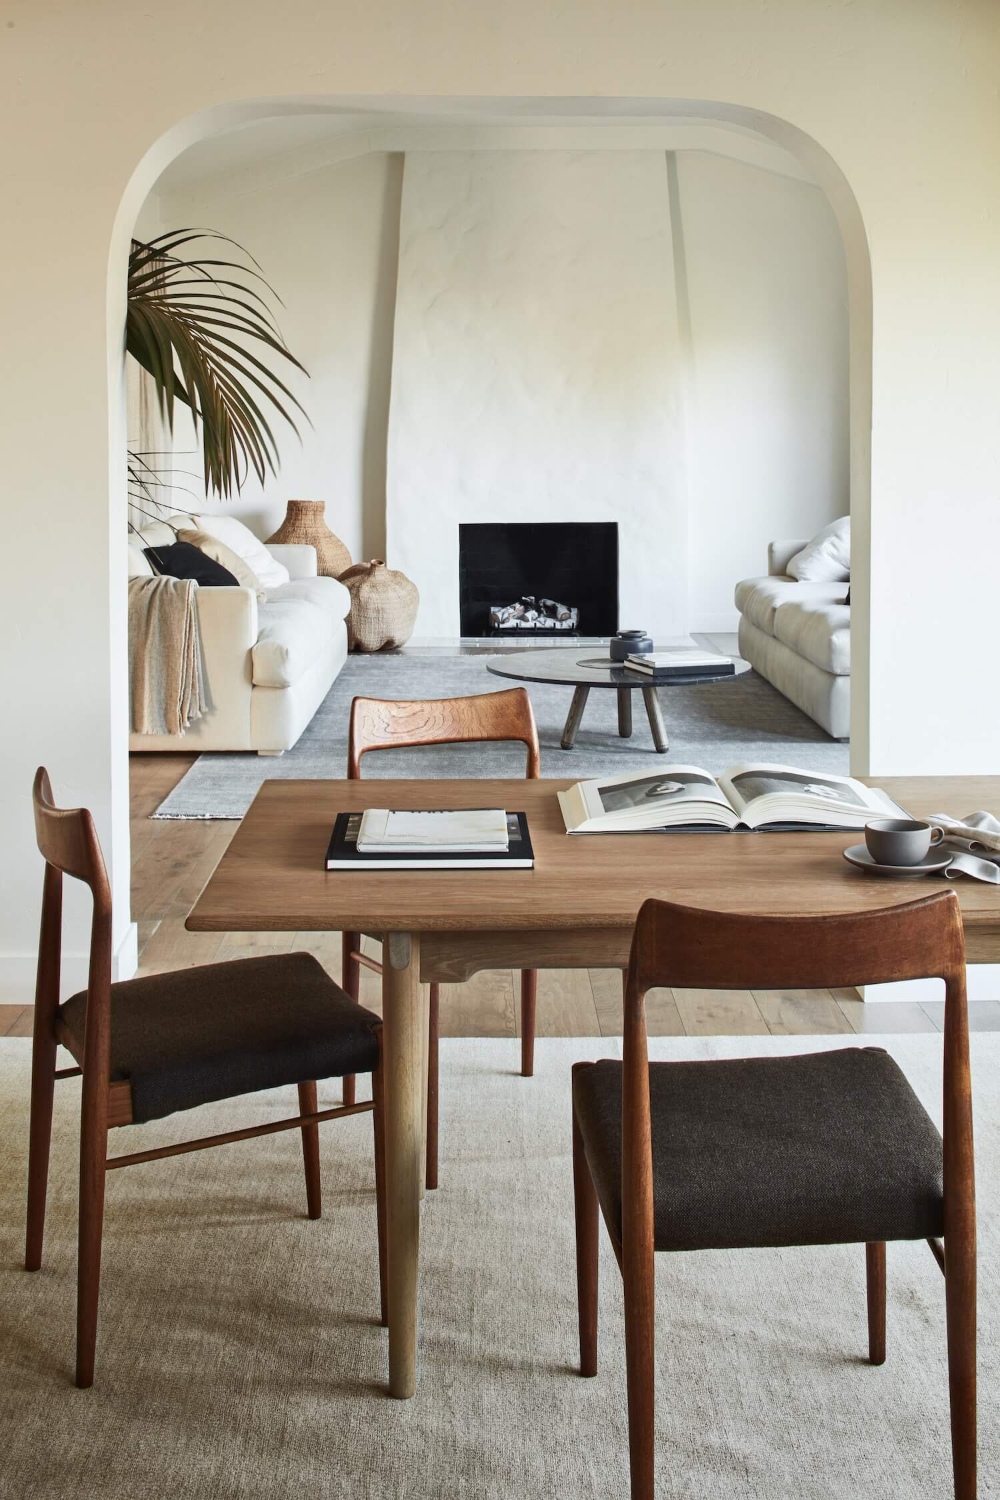 Chic Home Decor Ideas To Bring Calm Atmosphere Into Your Home31